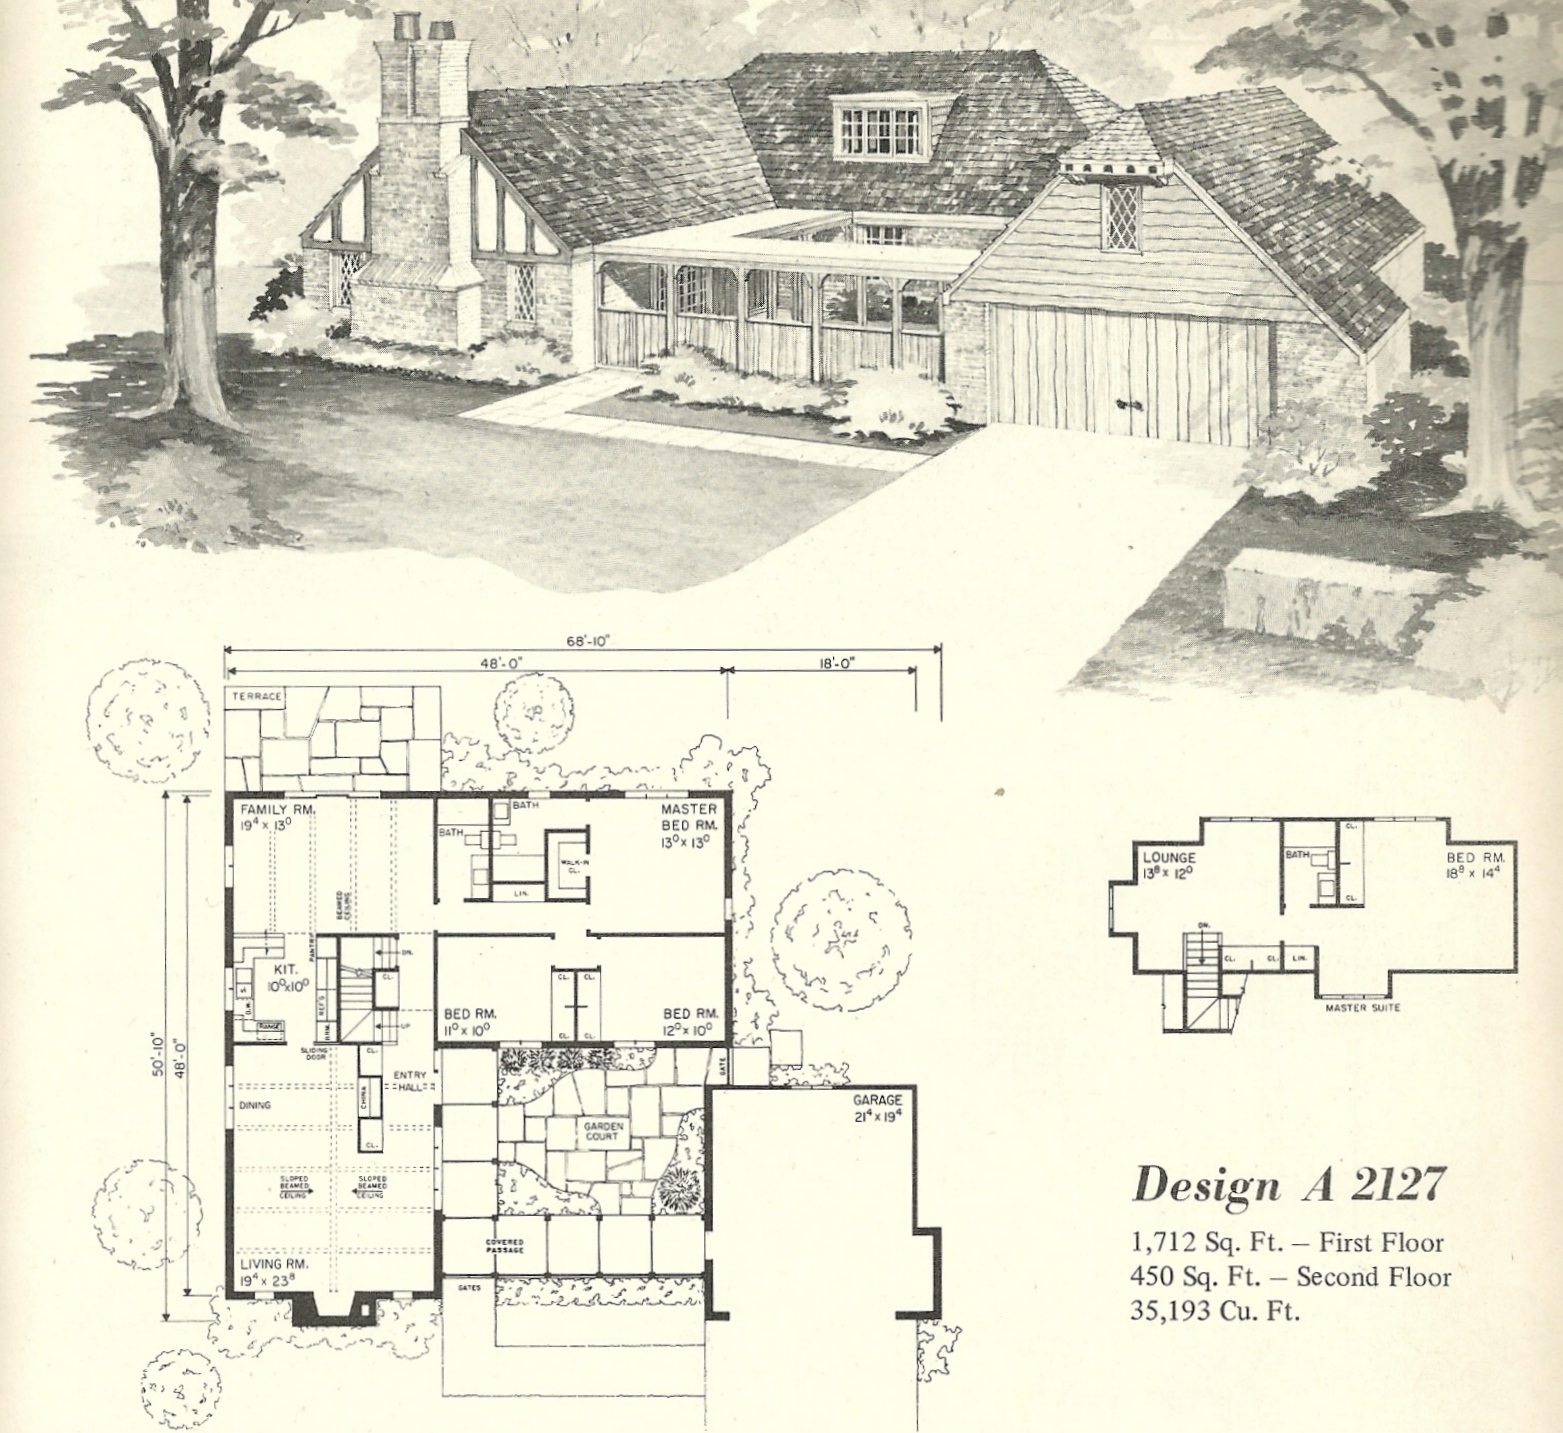 Vintage house plans 2127 antique alter ego for Architecture 1970